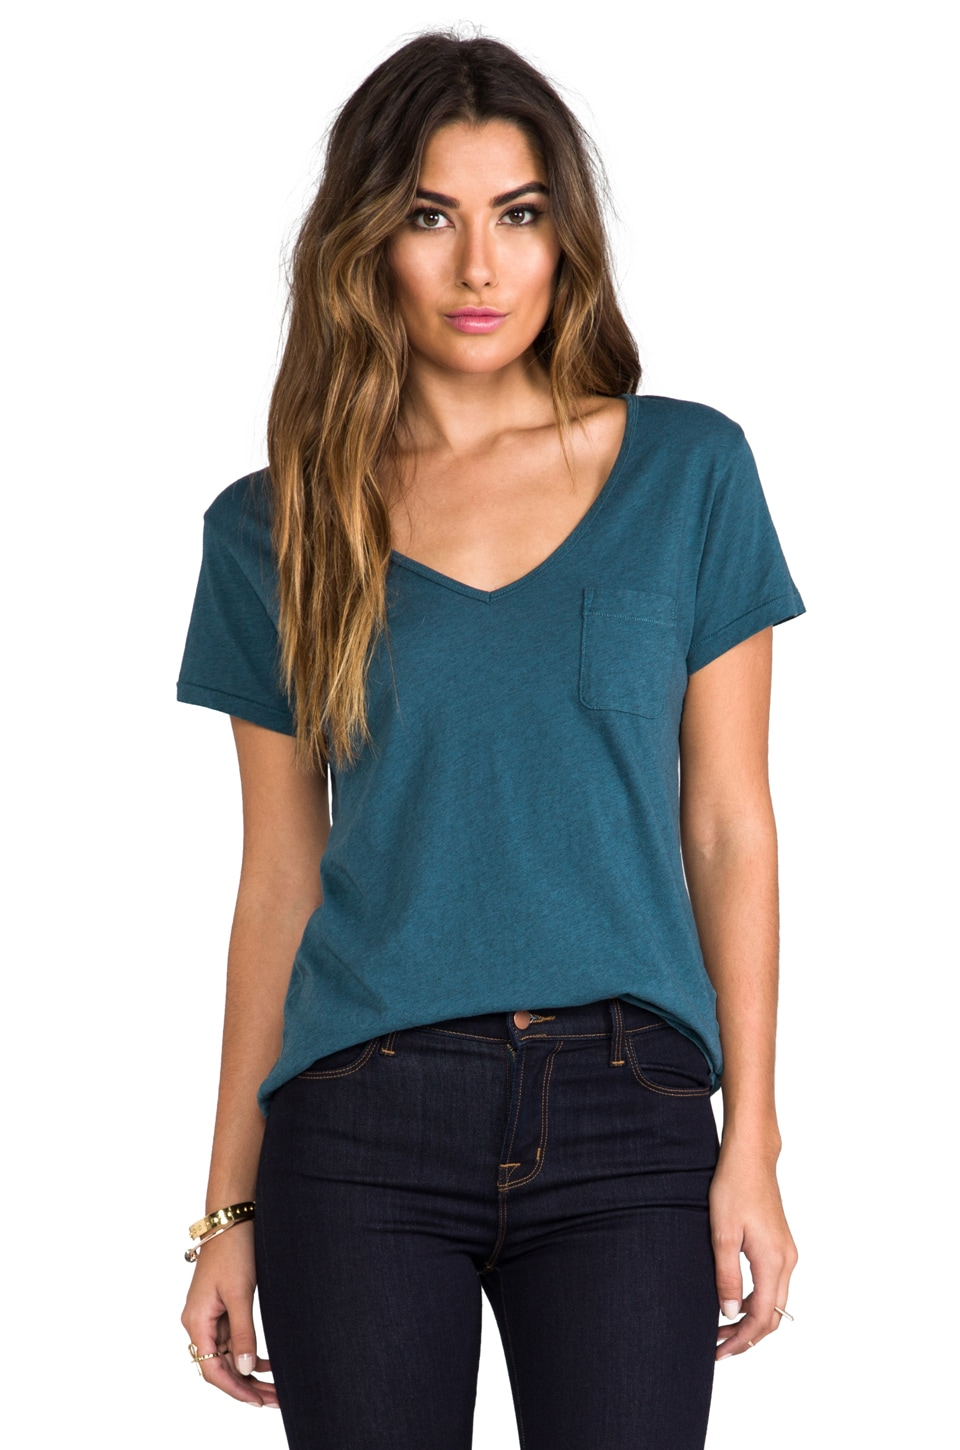 AG Adriano Goldschmied V-Neck Pocket Tee in Heather Juniper